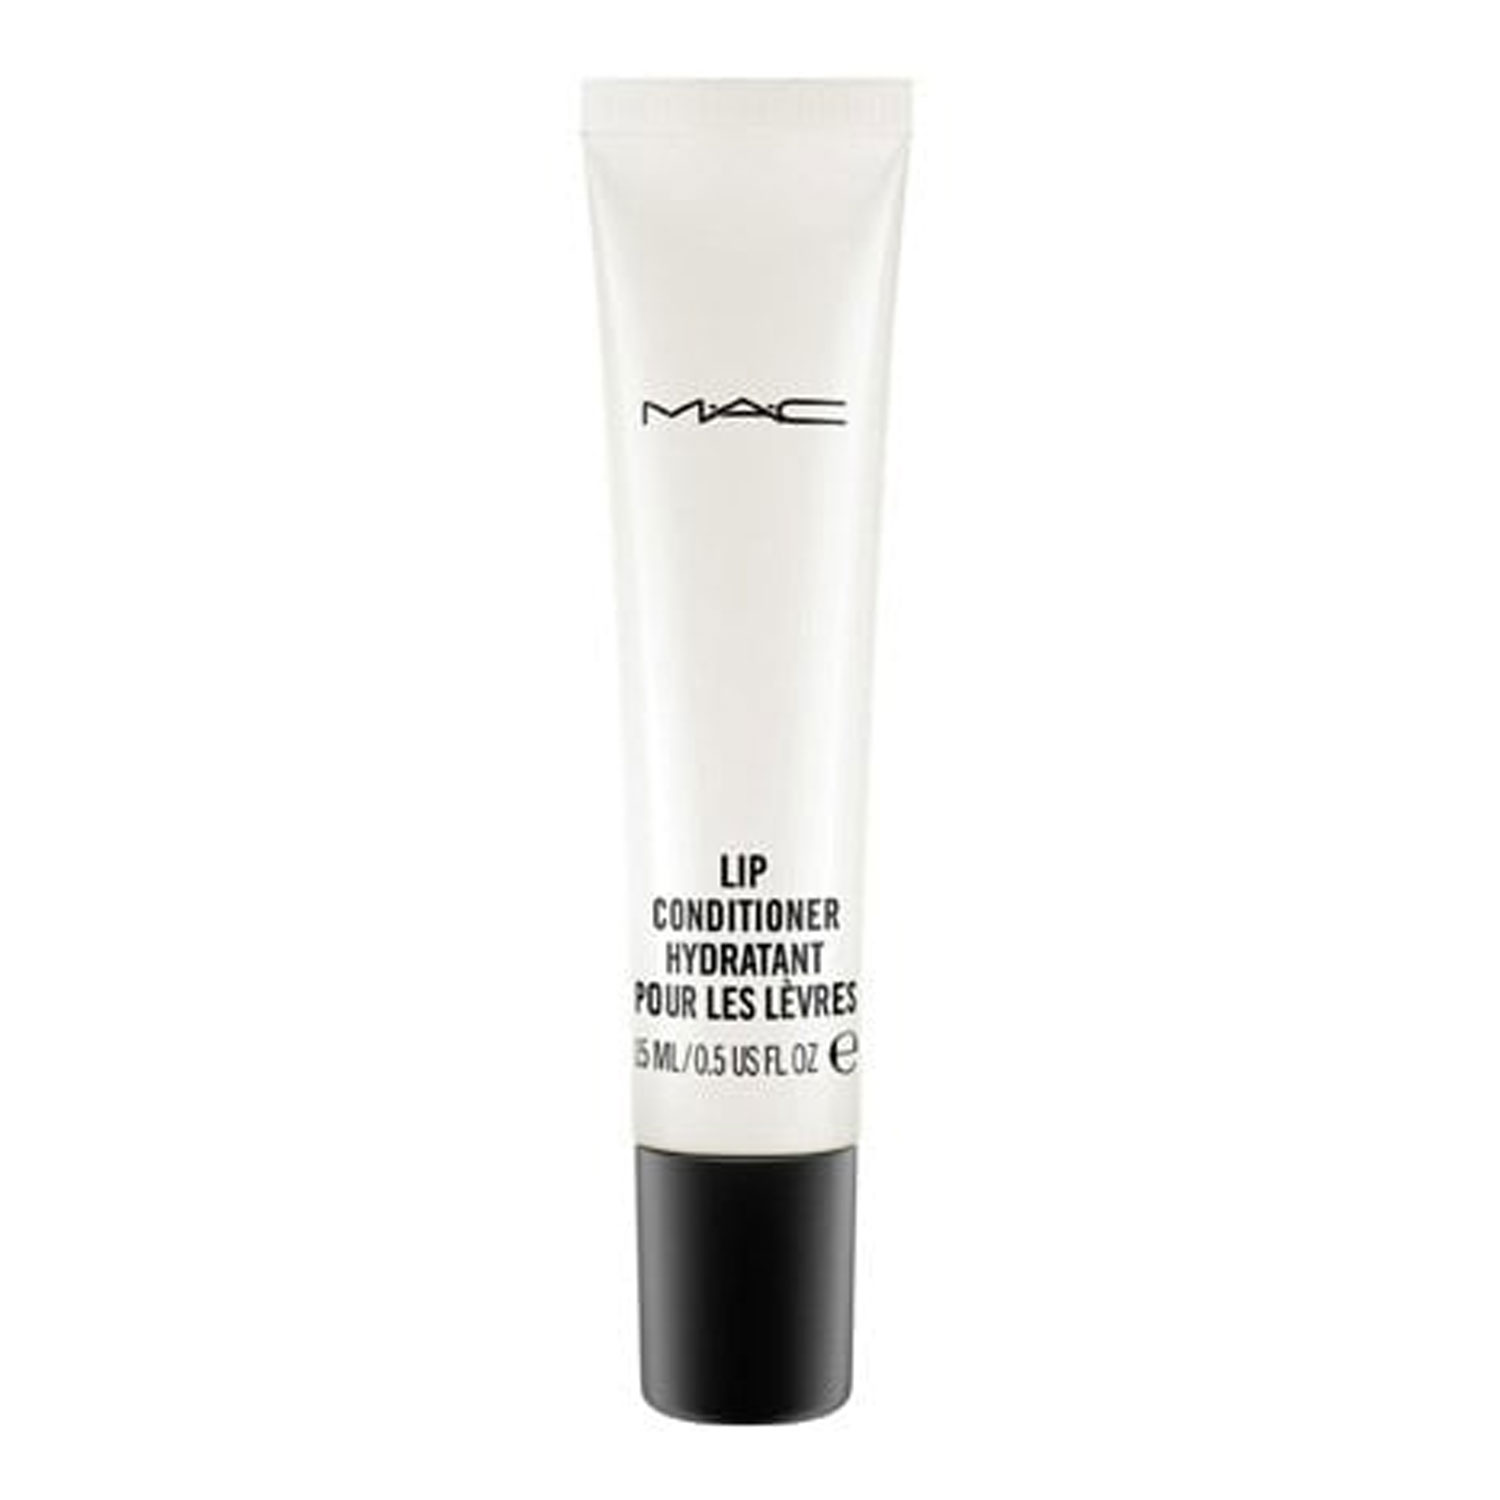 M·A·C Skin Care - Lip Conditioner